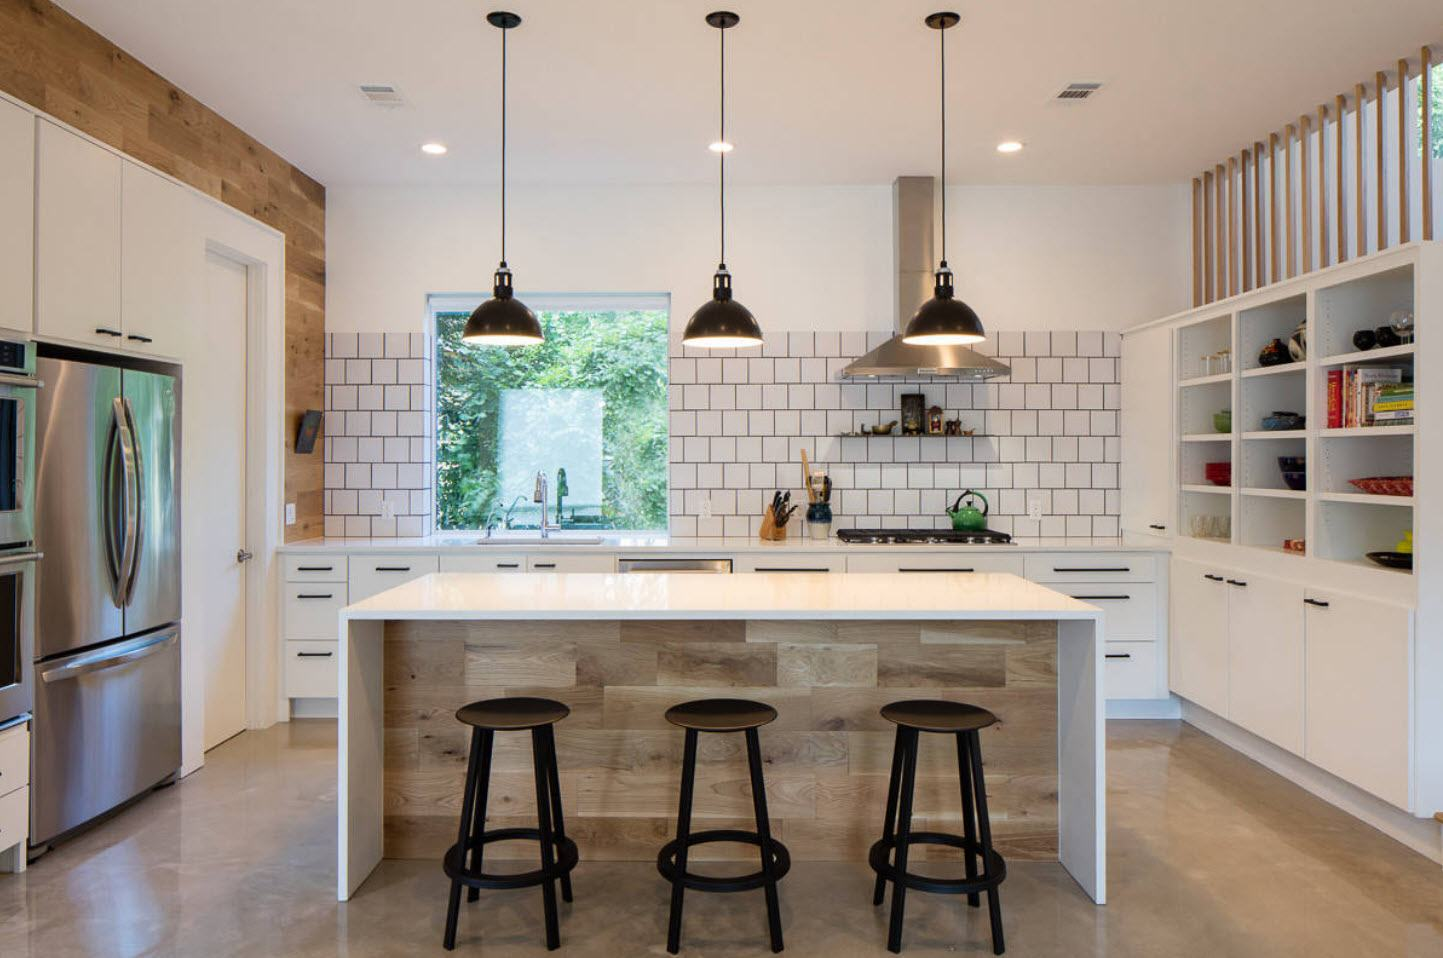 120 Square Feet Kitchen Interior Design Ideas with Photos. Casual design with white mosaic at the splashback zone